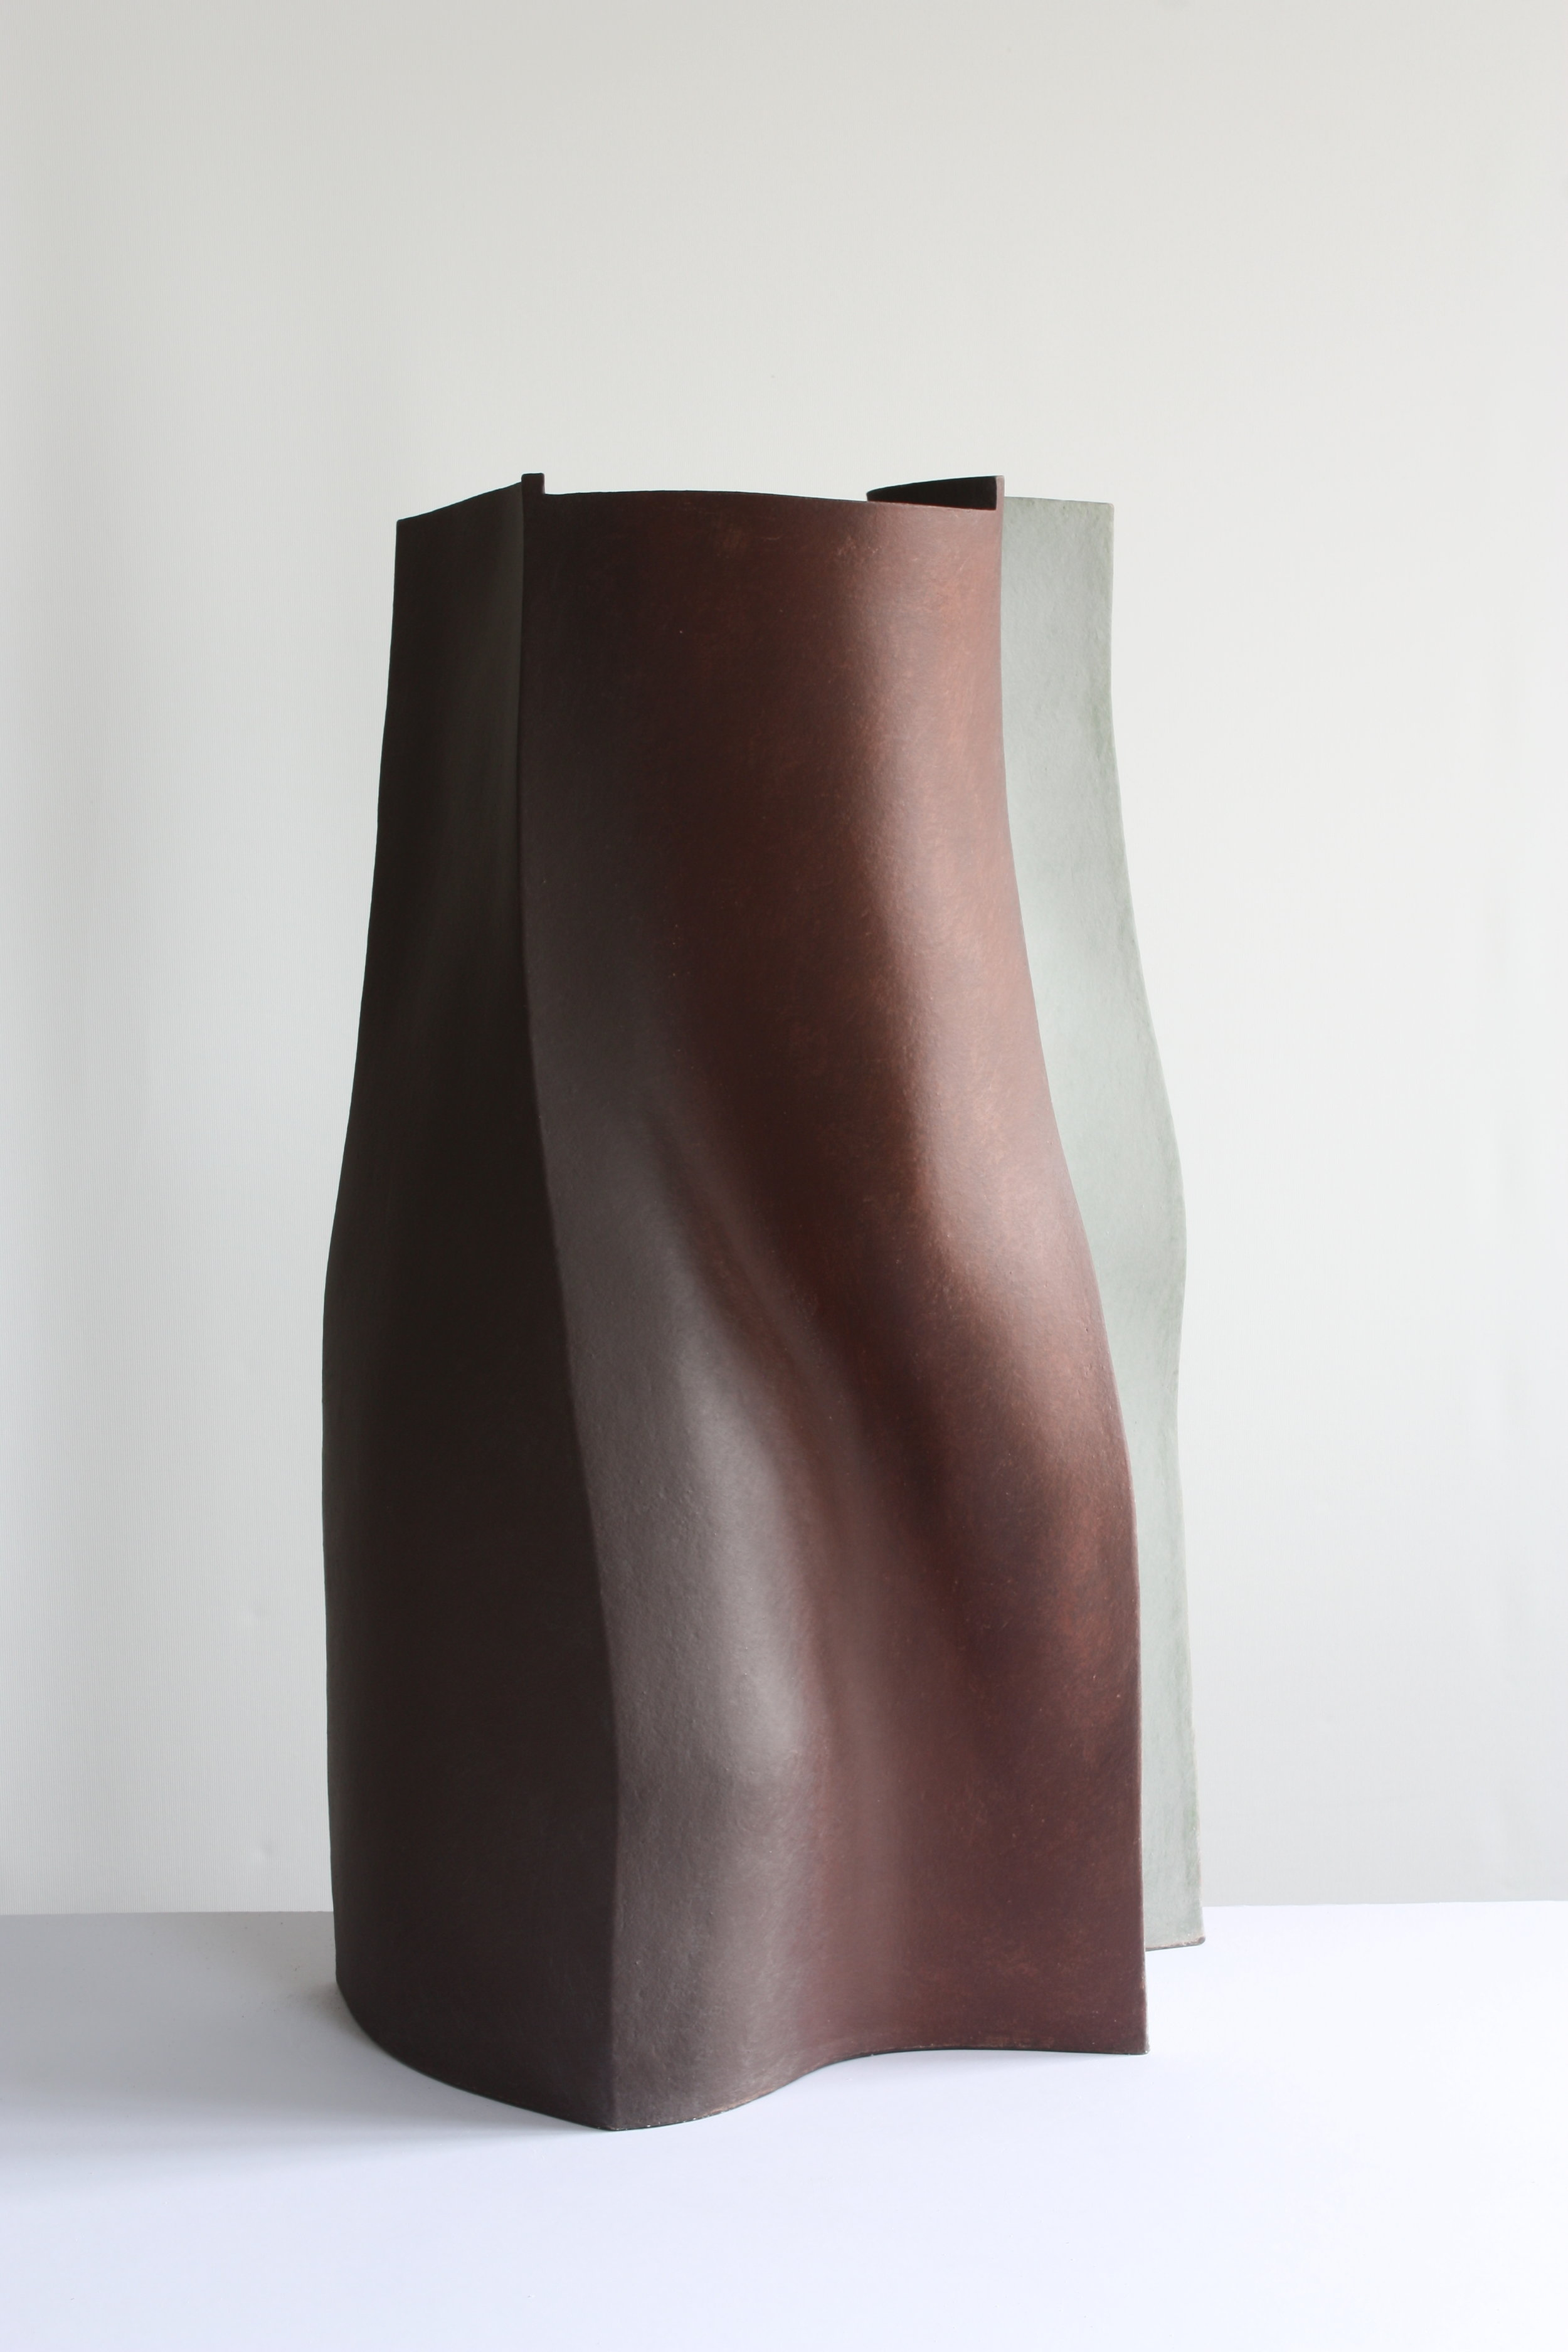 Covering ground, 2015, 56cm high